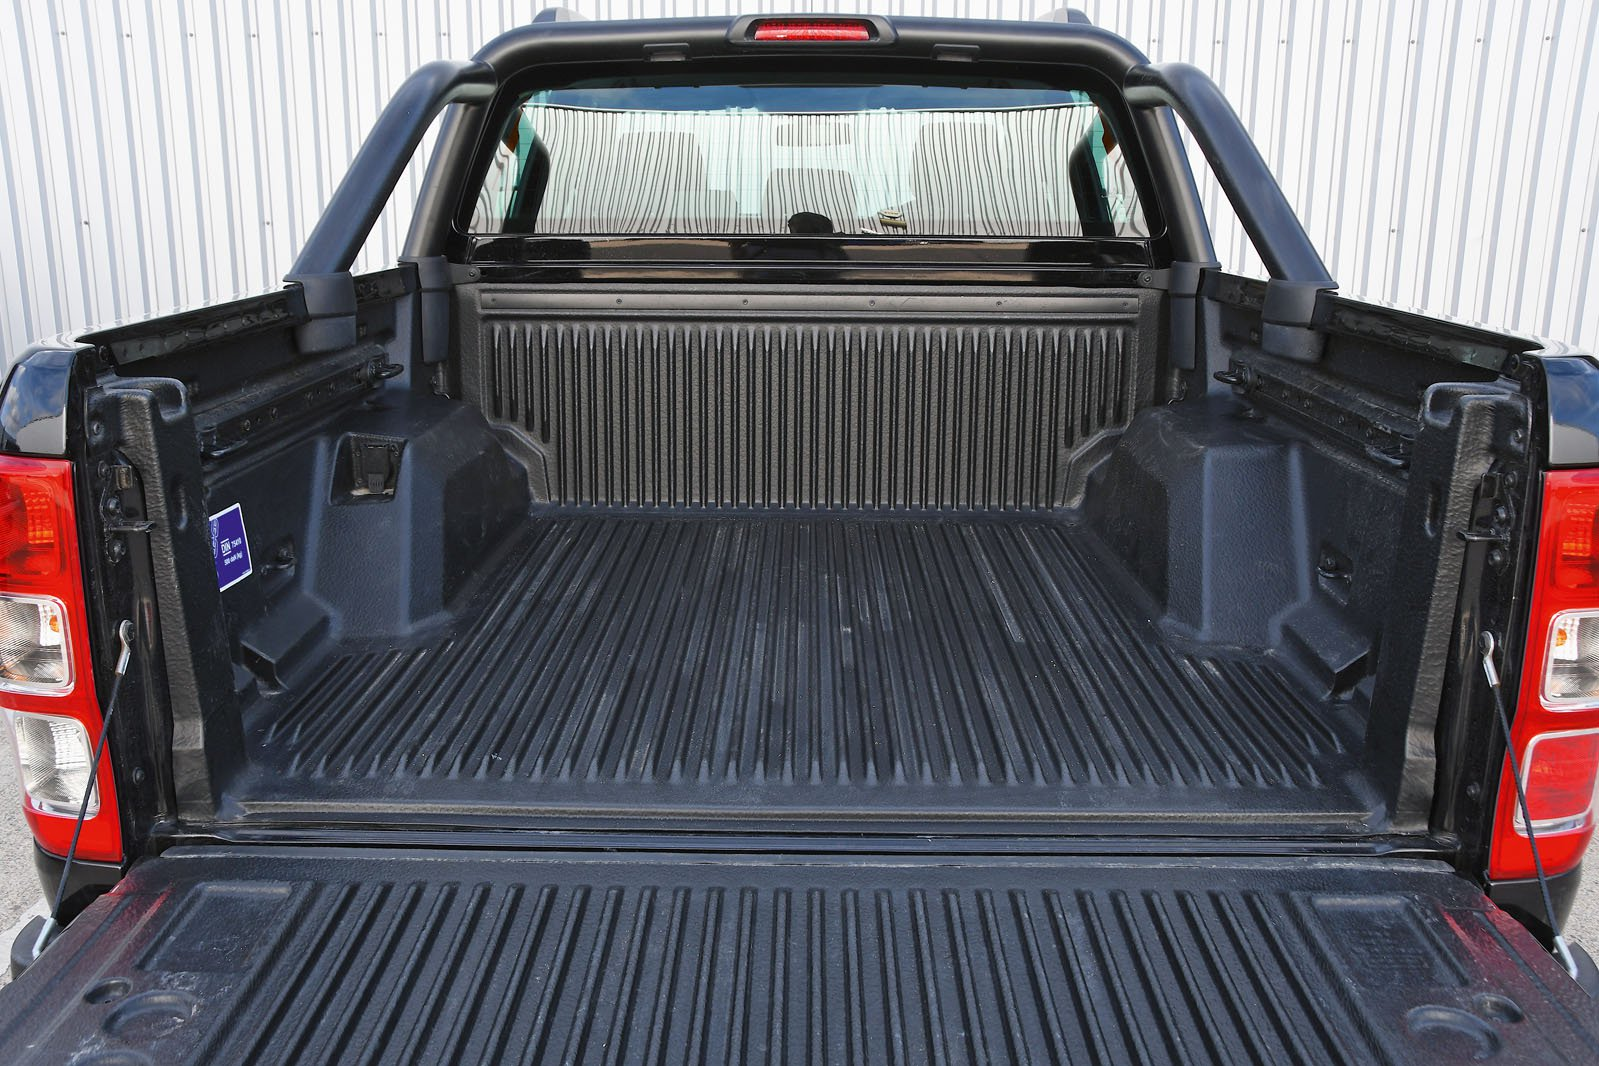 Ford Ranger bed